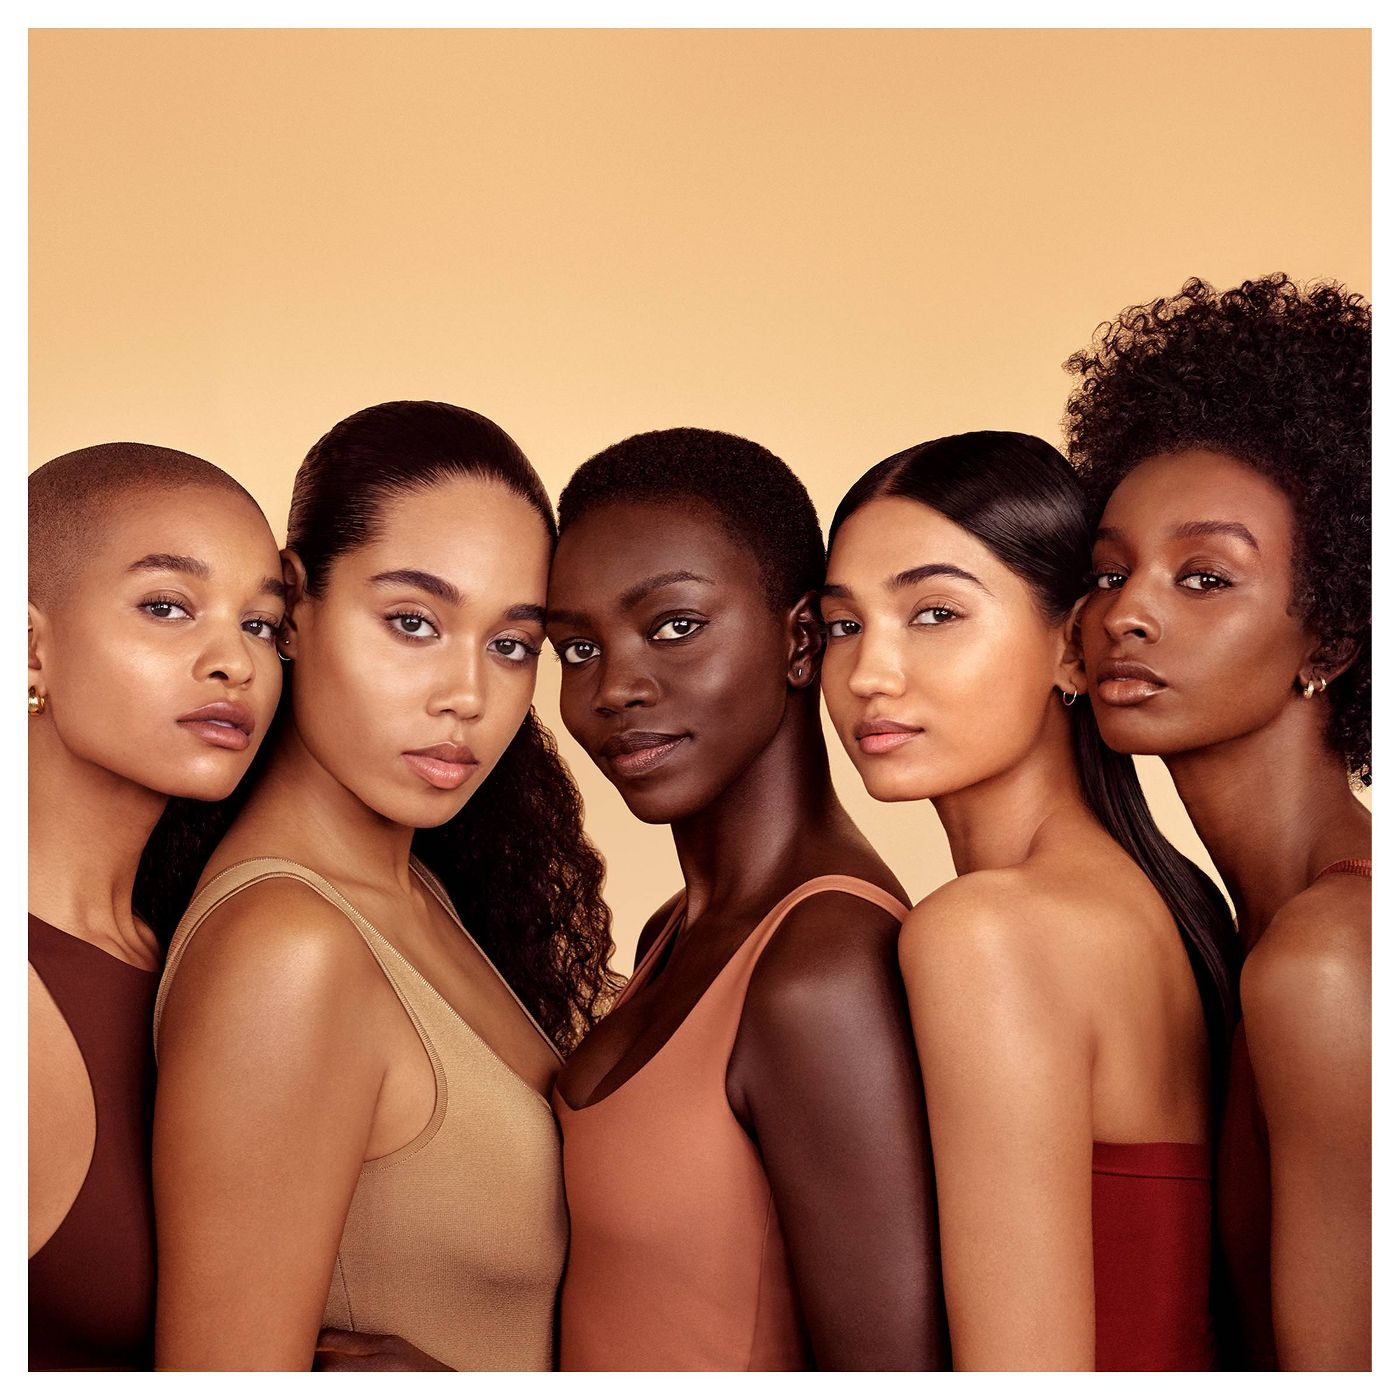 group of woman posing for skin care brand